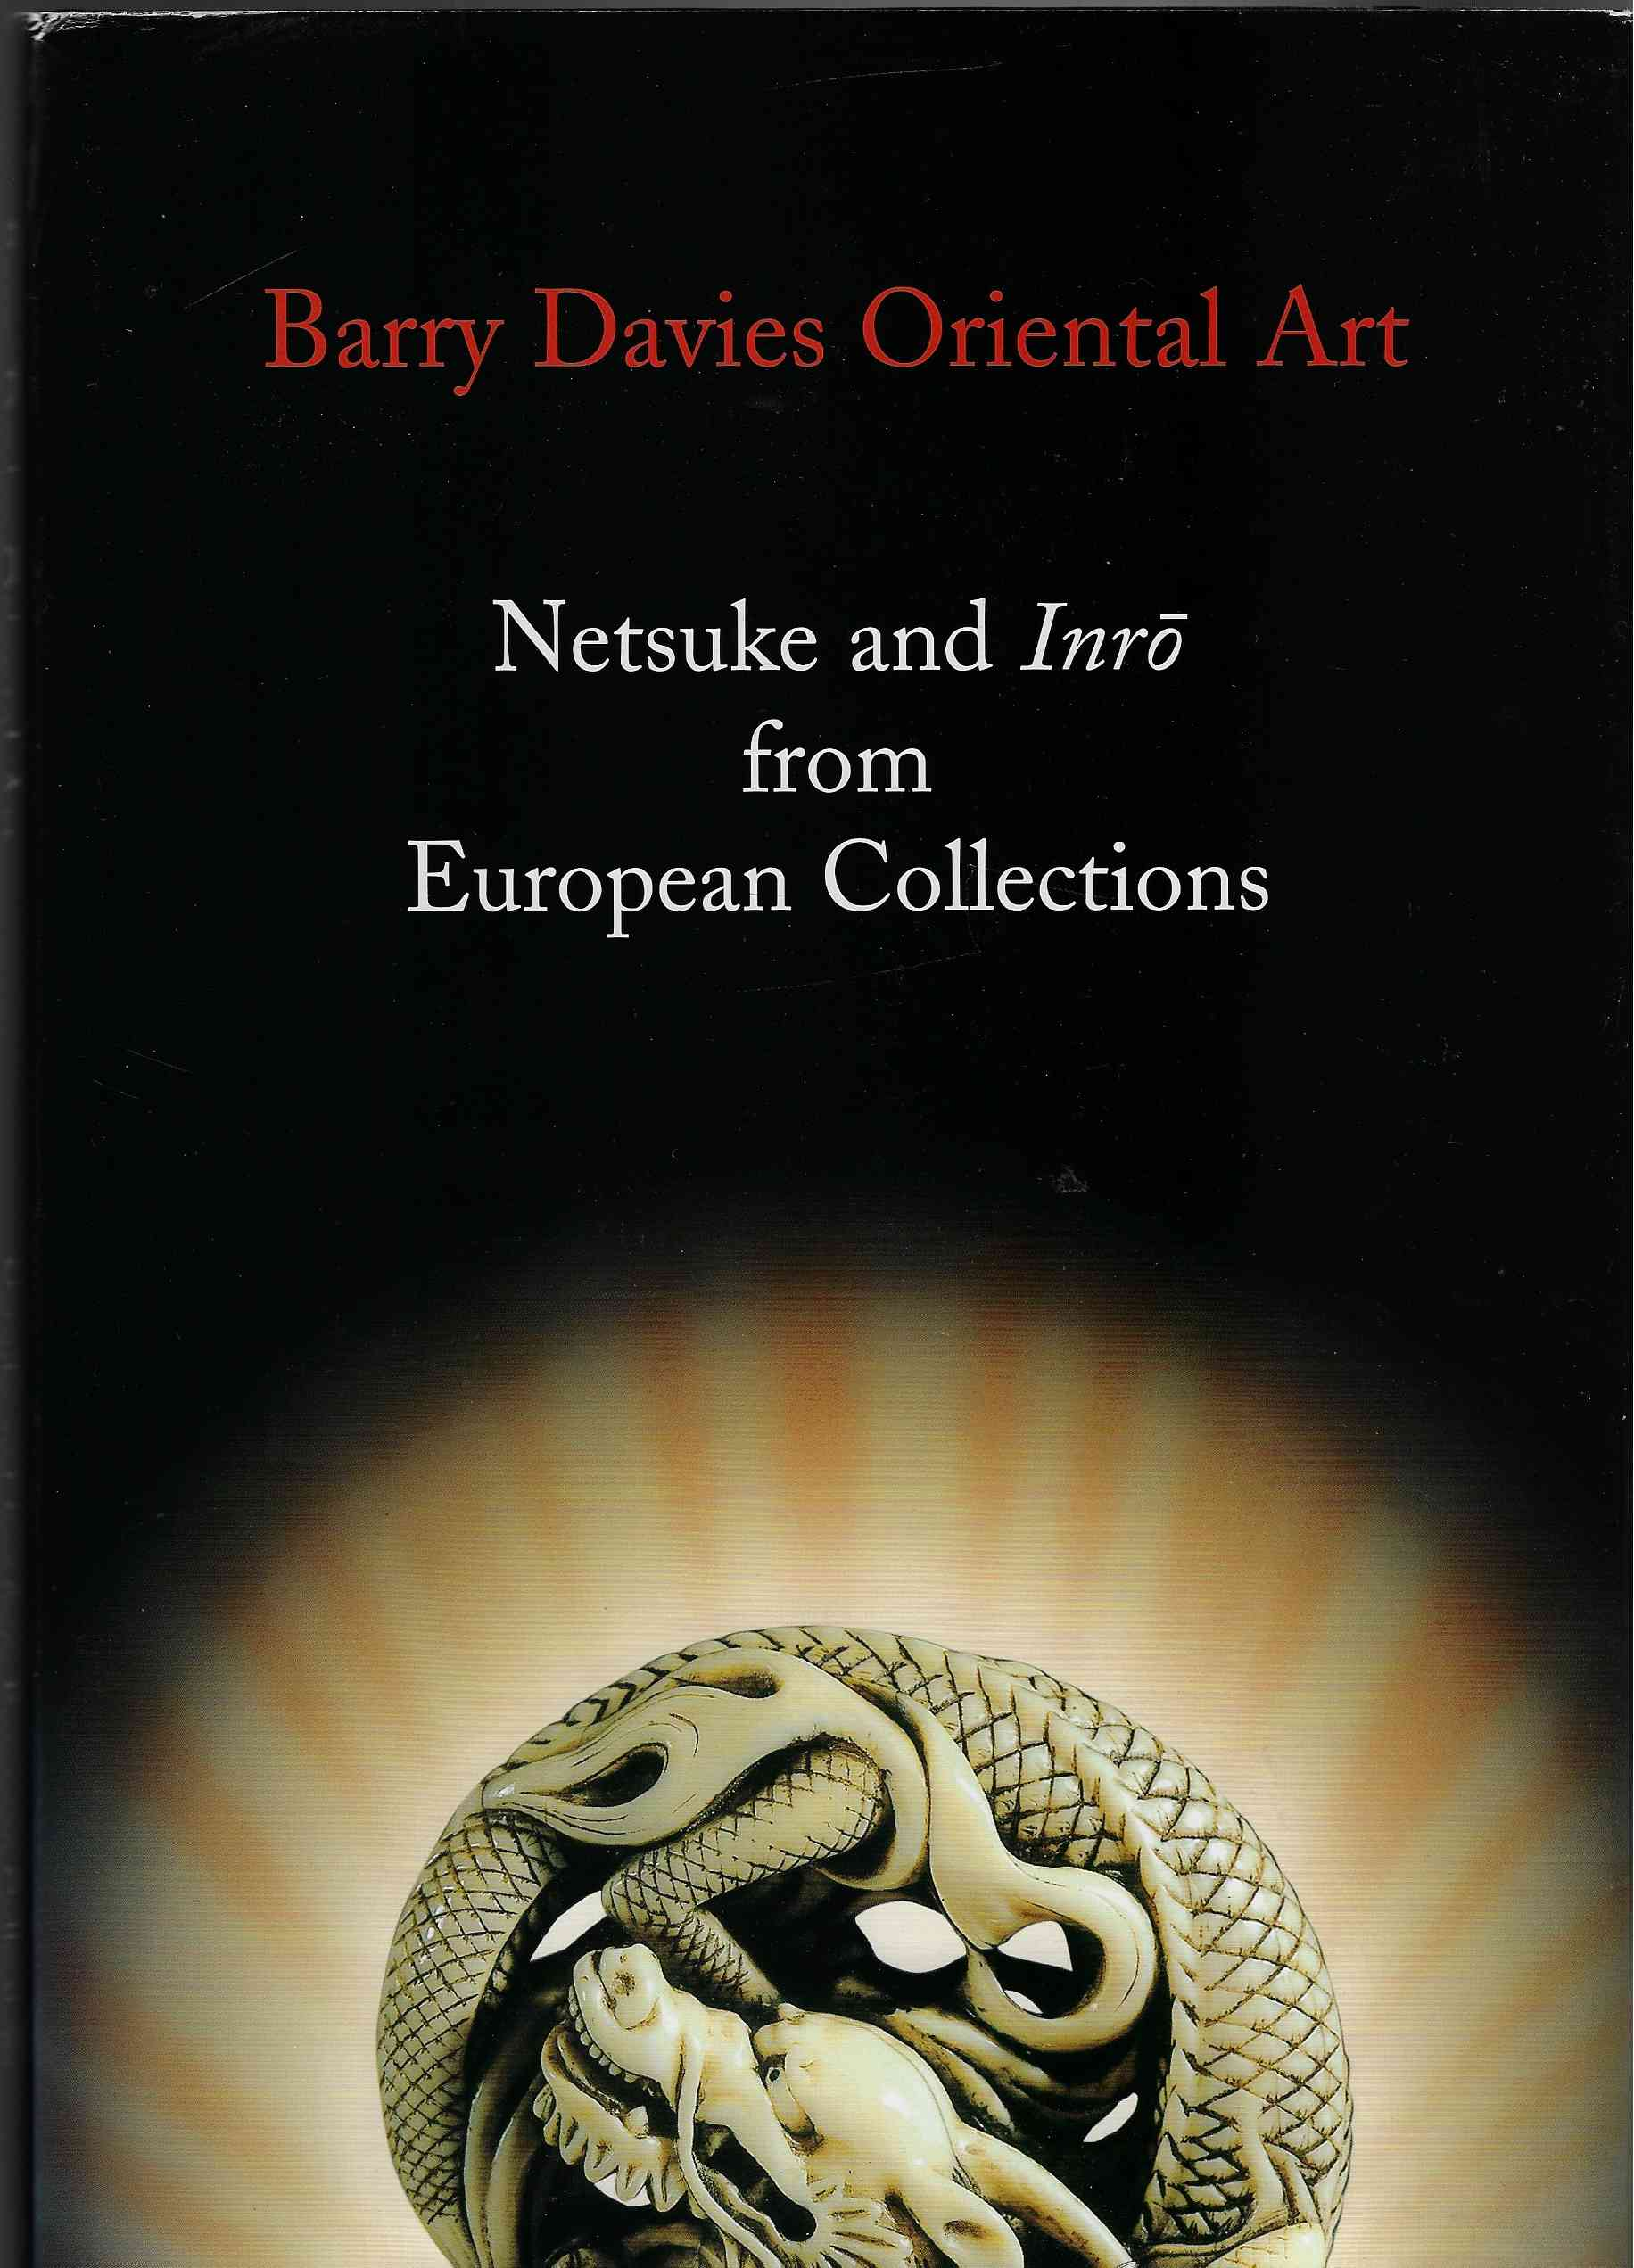 Image for Netsuke and Inro from European Collections Barry Davies Oriental Art, 17 June - 5 July, 2002